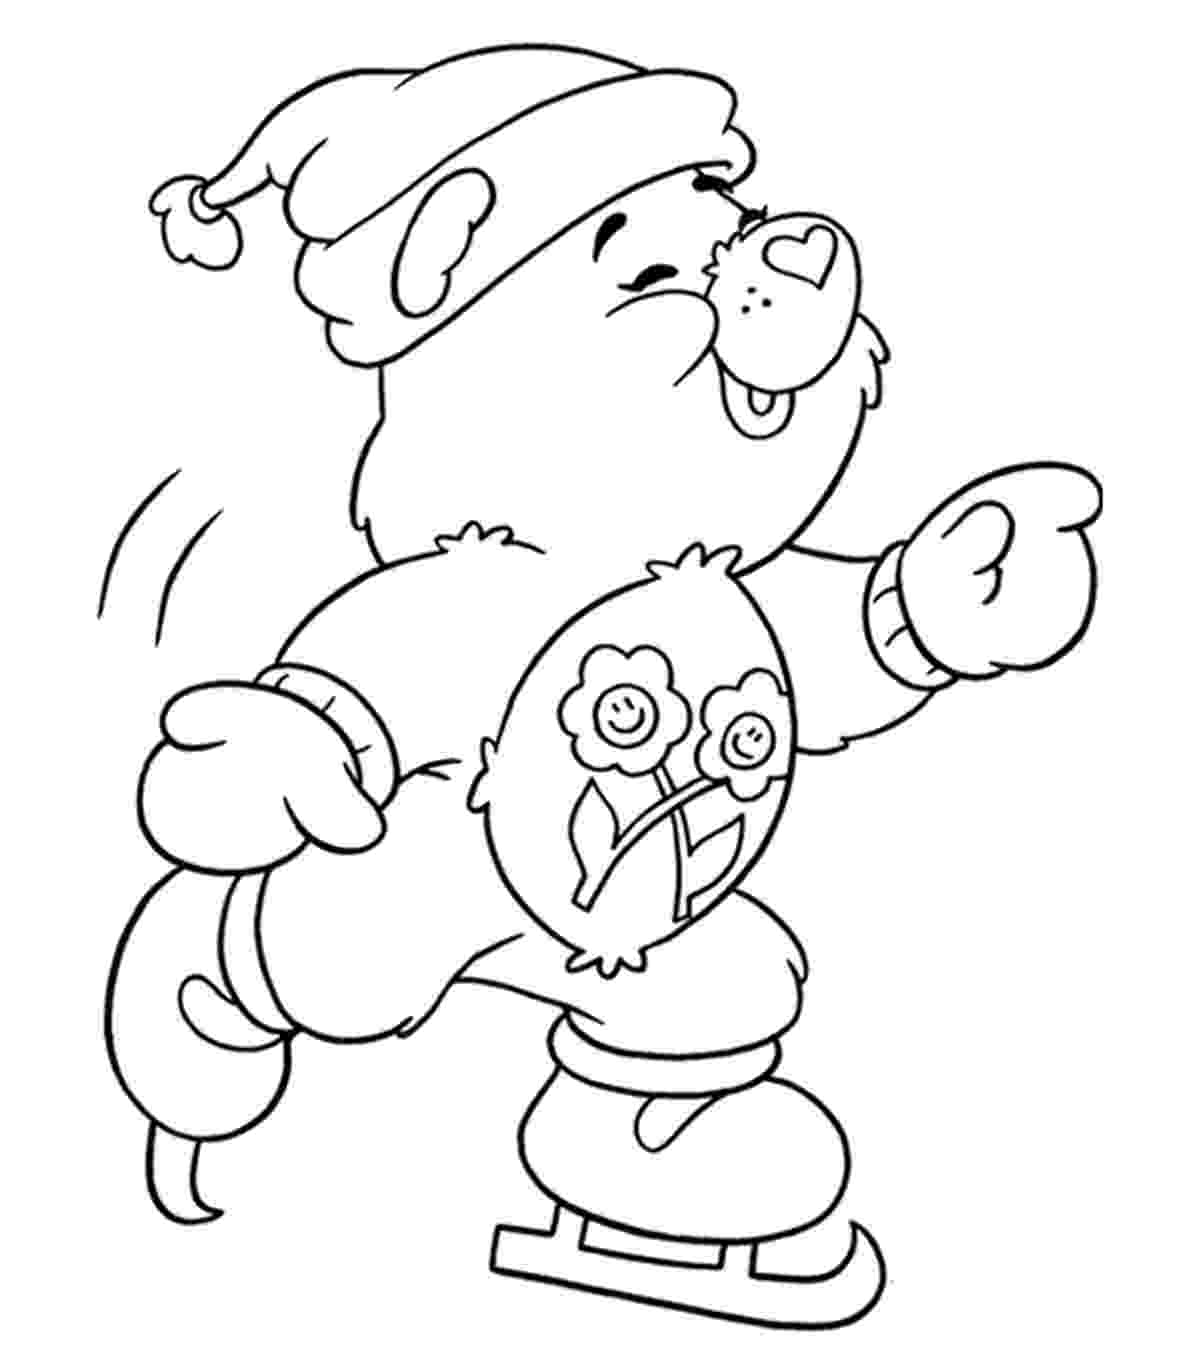 winter coloring sheets winter season coloring pages crafts and worksheets for sheets winter coloring